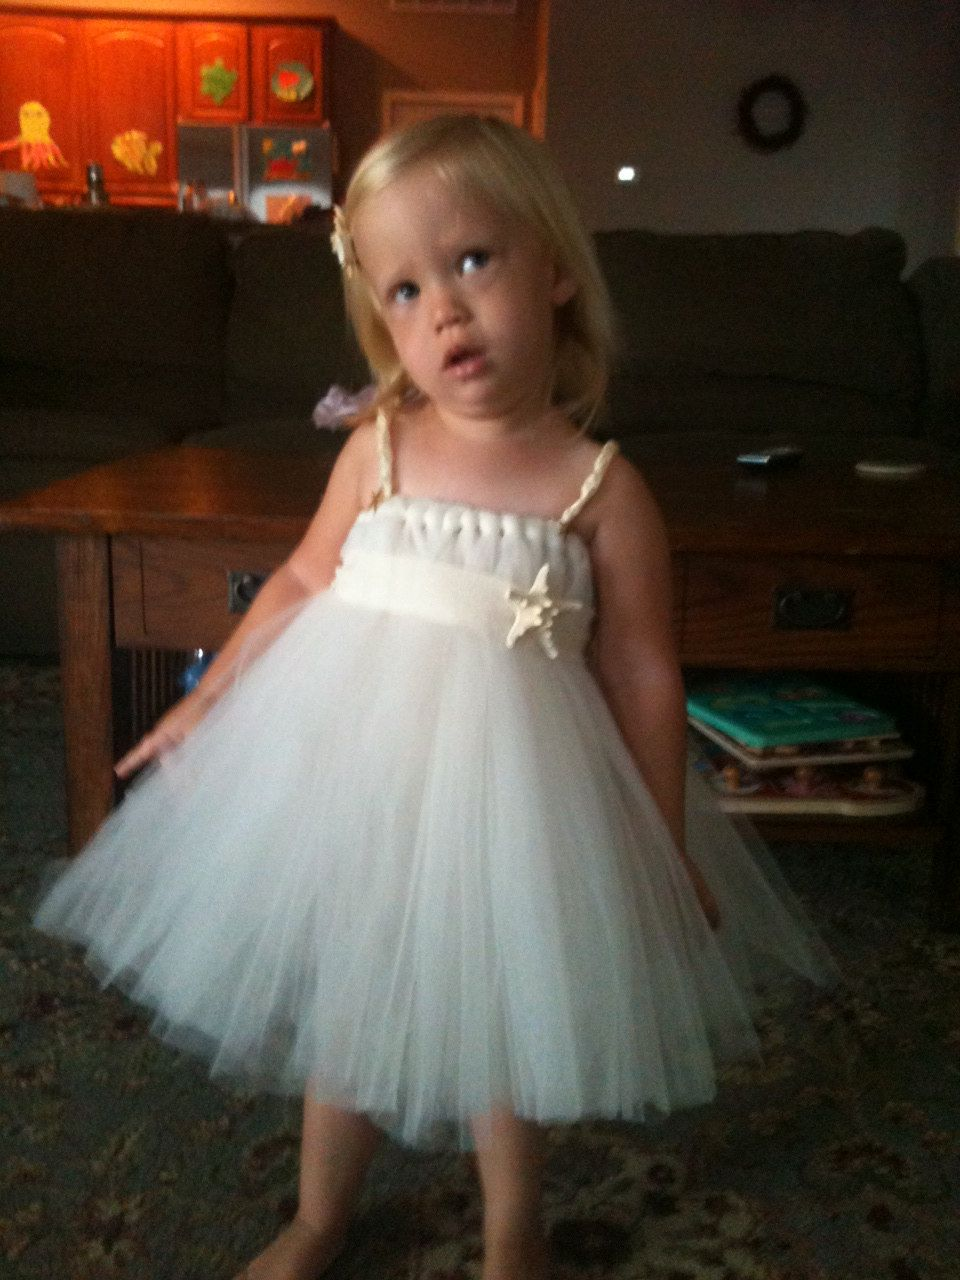 Beach wedding flower girl dresses  Beach Flower Girl Tutu Dress  via Etsy  Dream Weddinguc